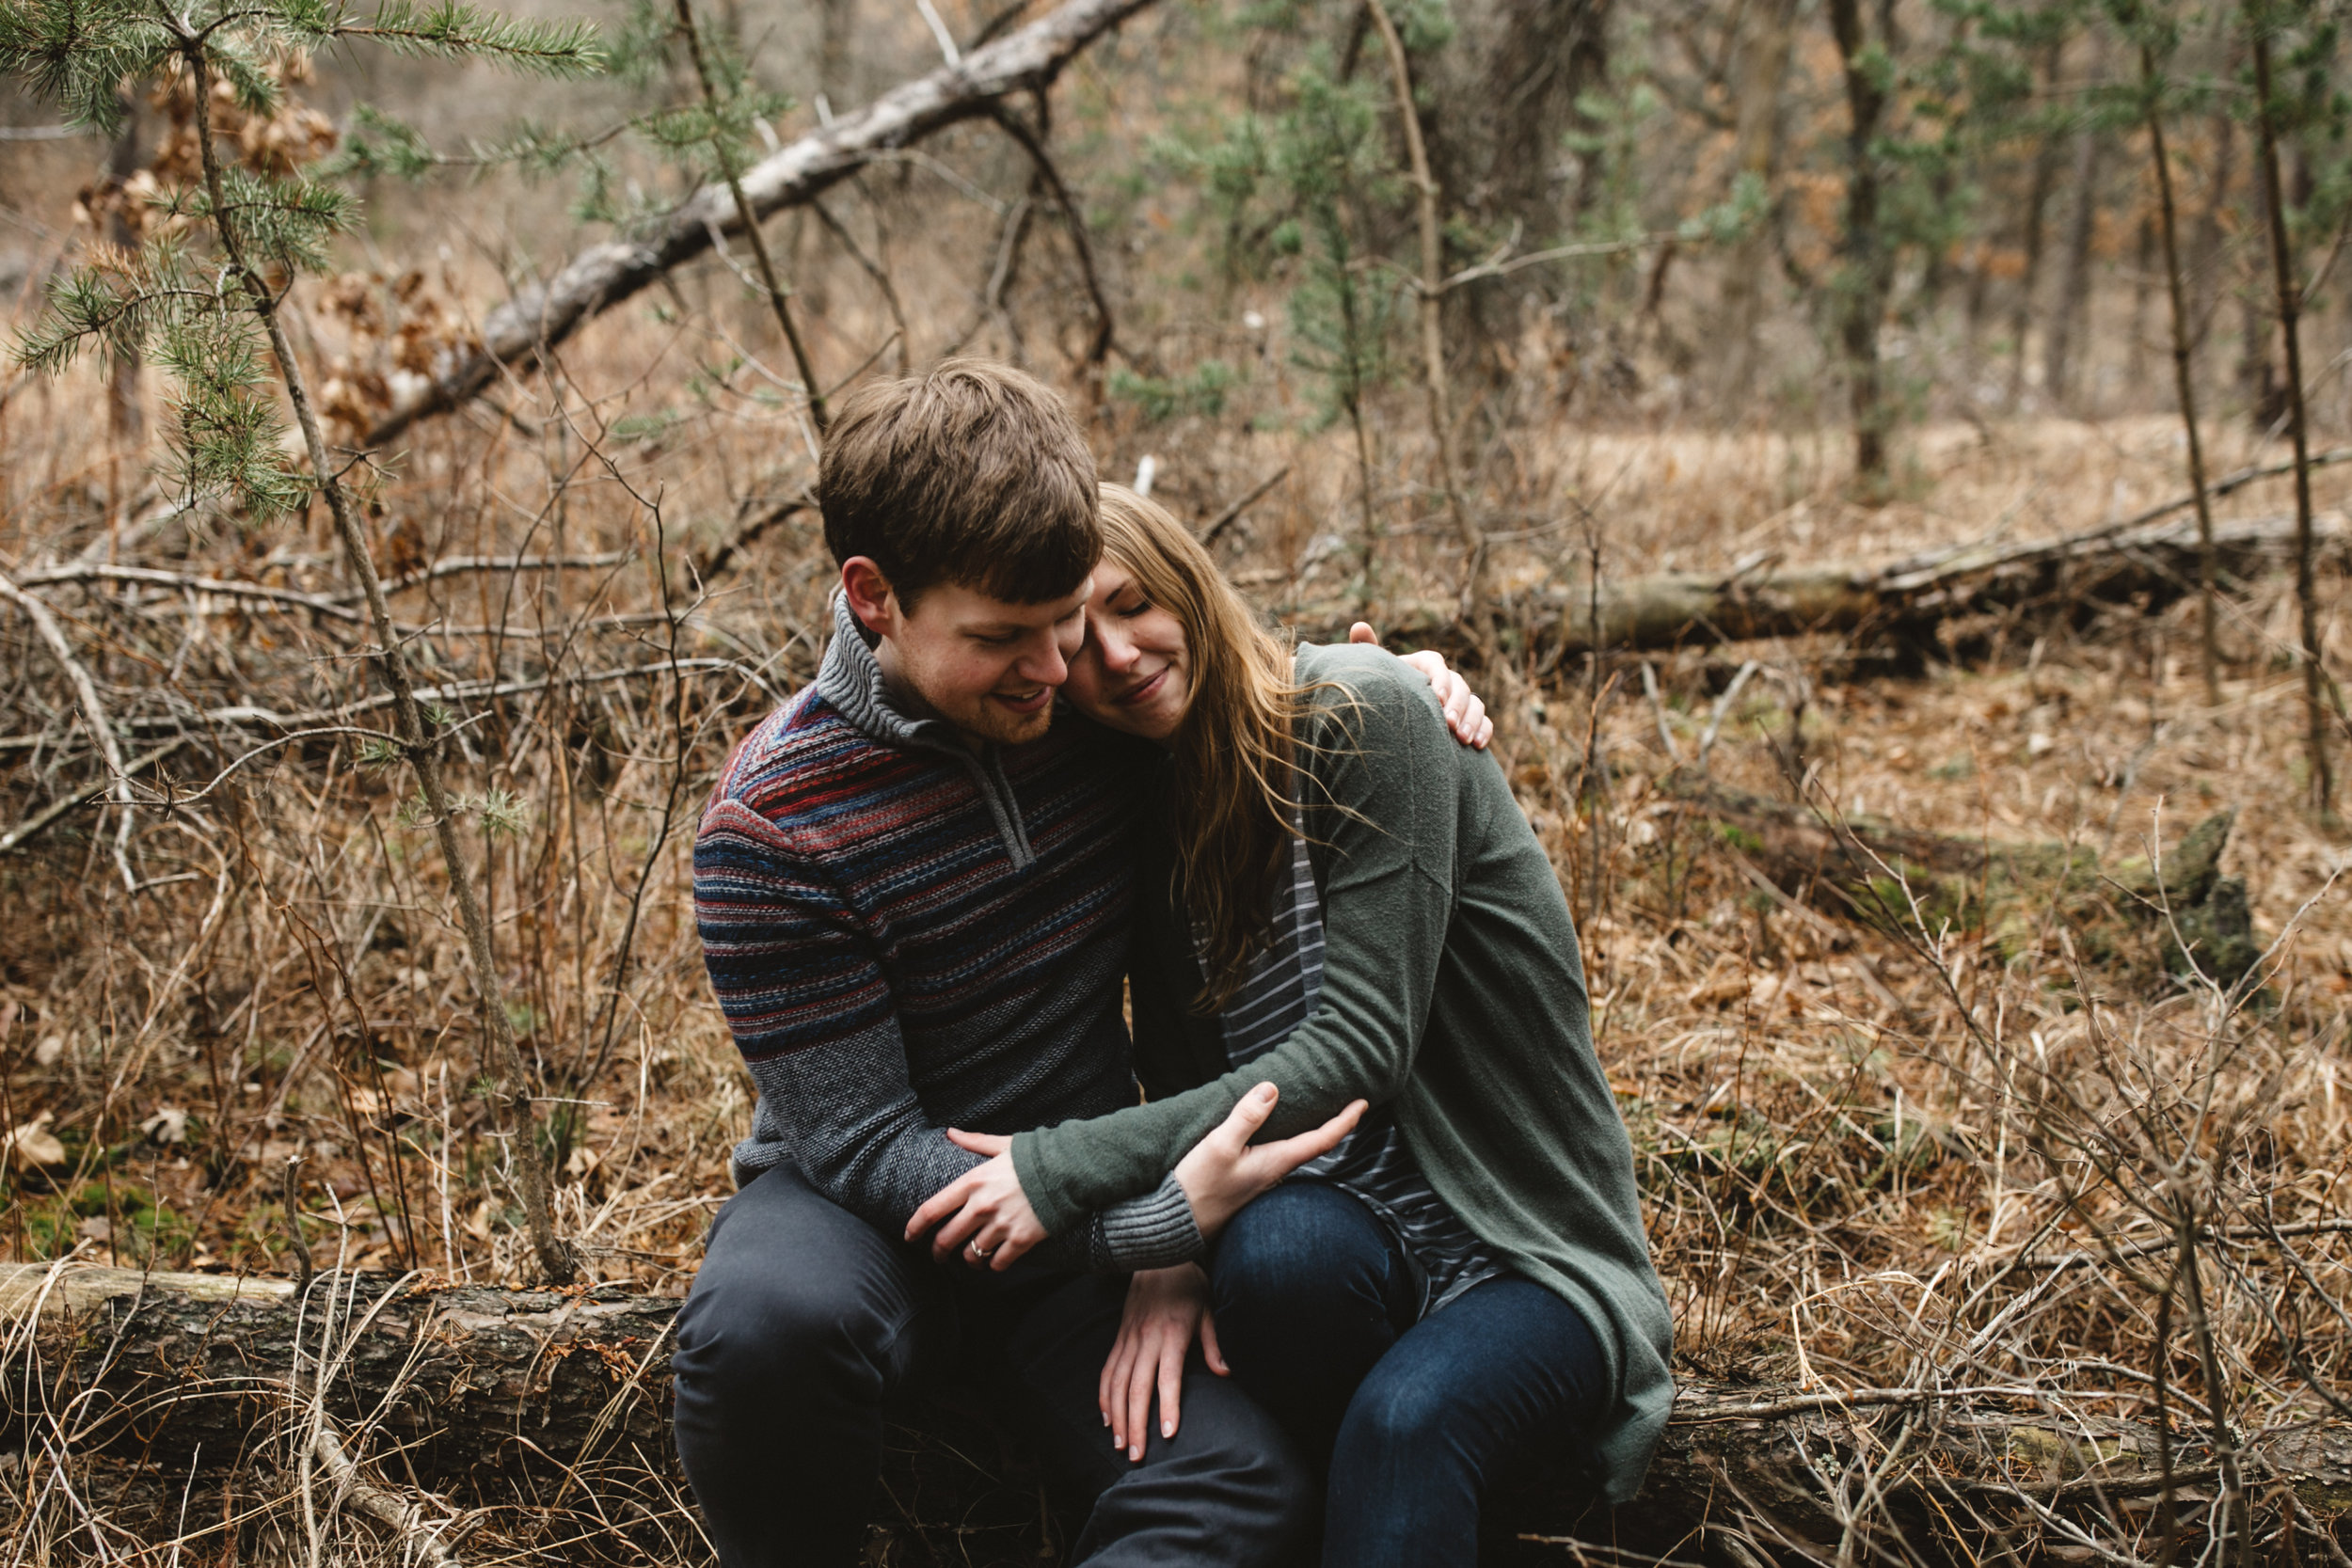 Intimate engagement session in the woods at the northland arboretum photographed by Britt DeZeeuw, Brainerd Minnesota wedding photographer